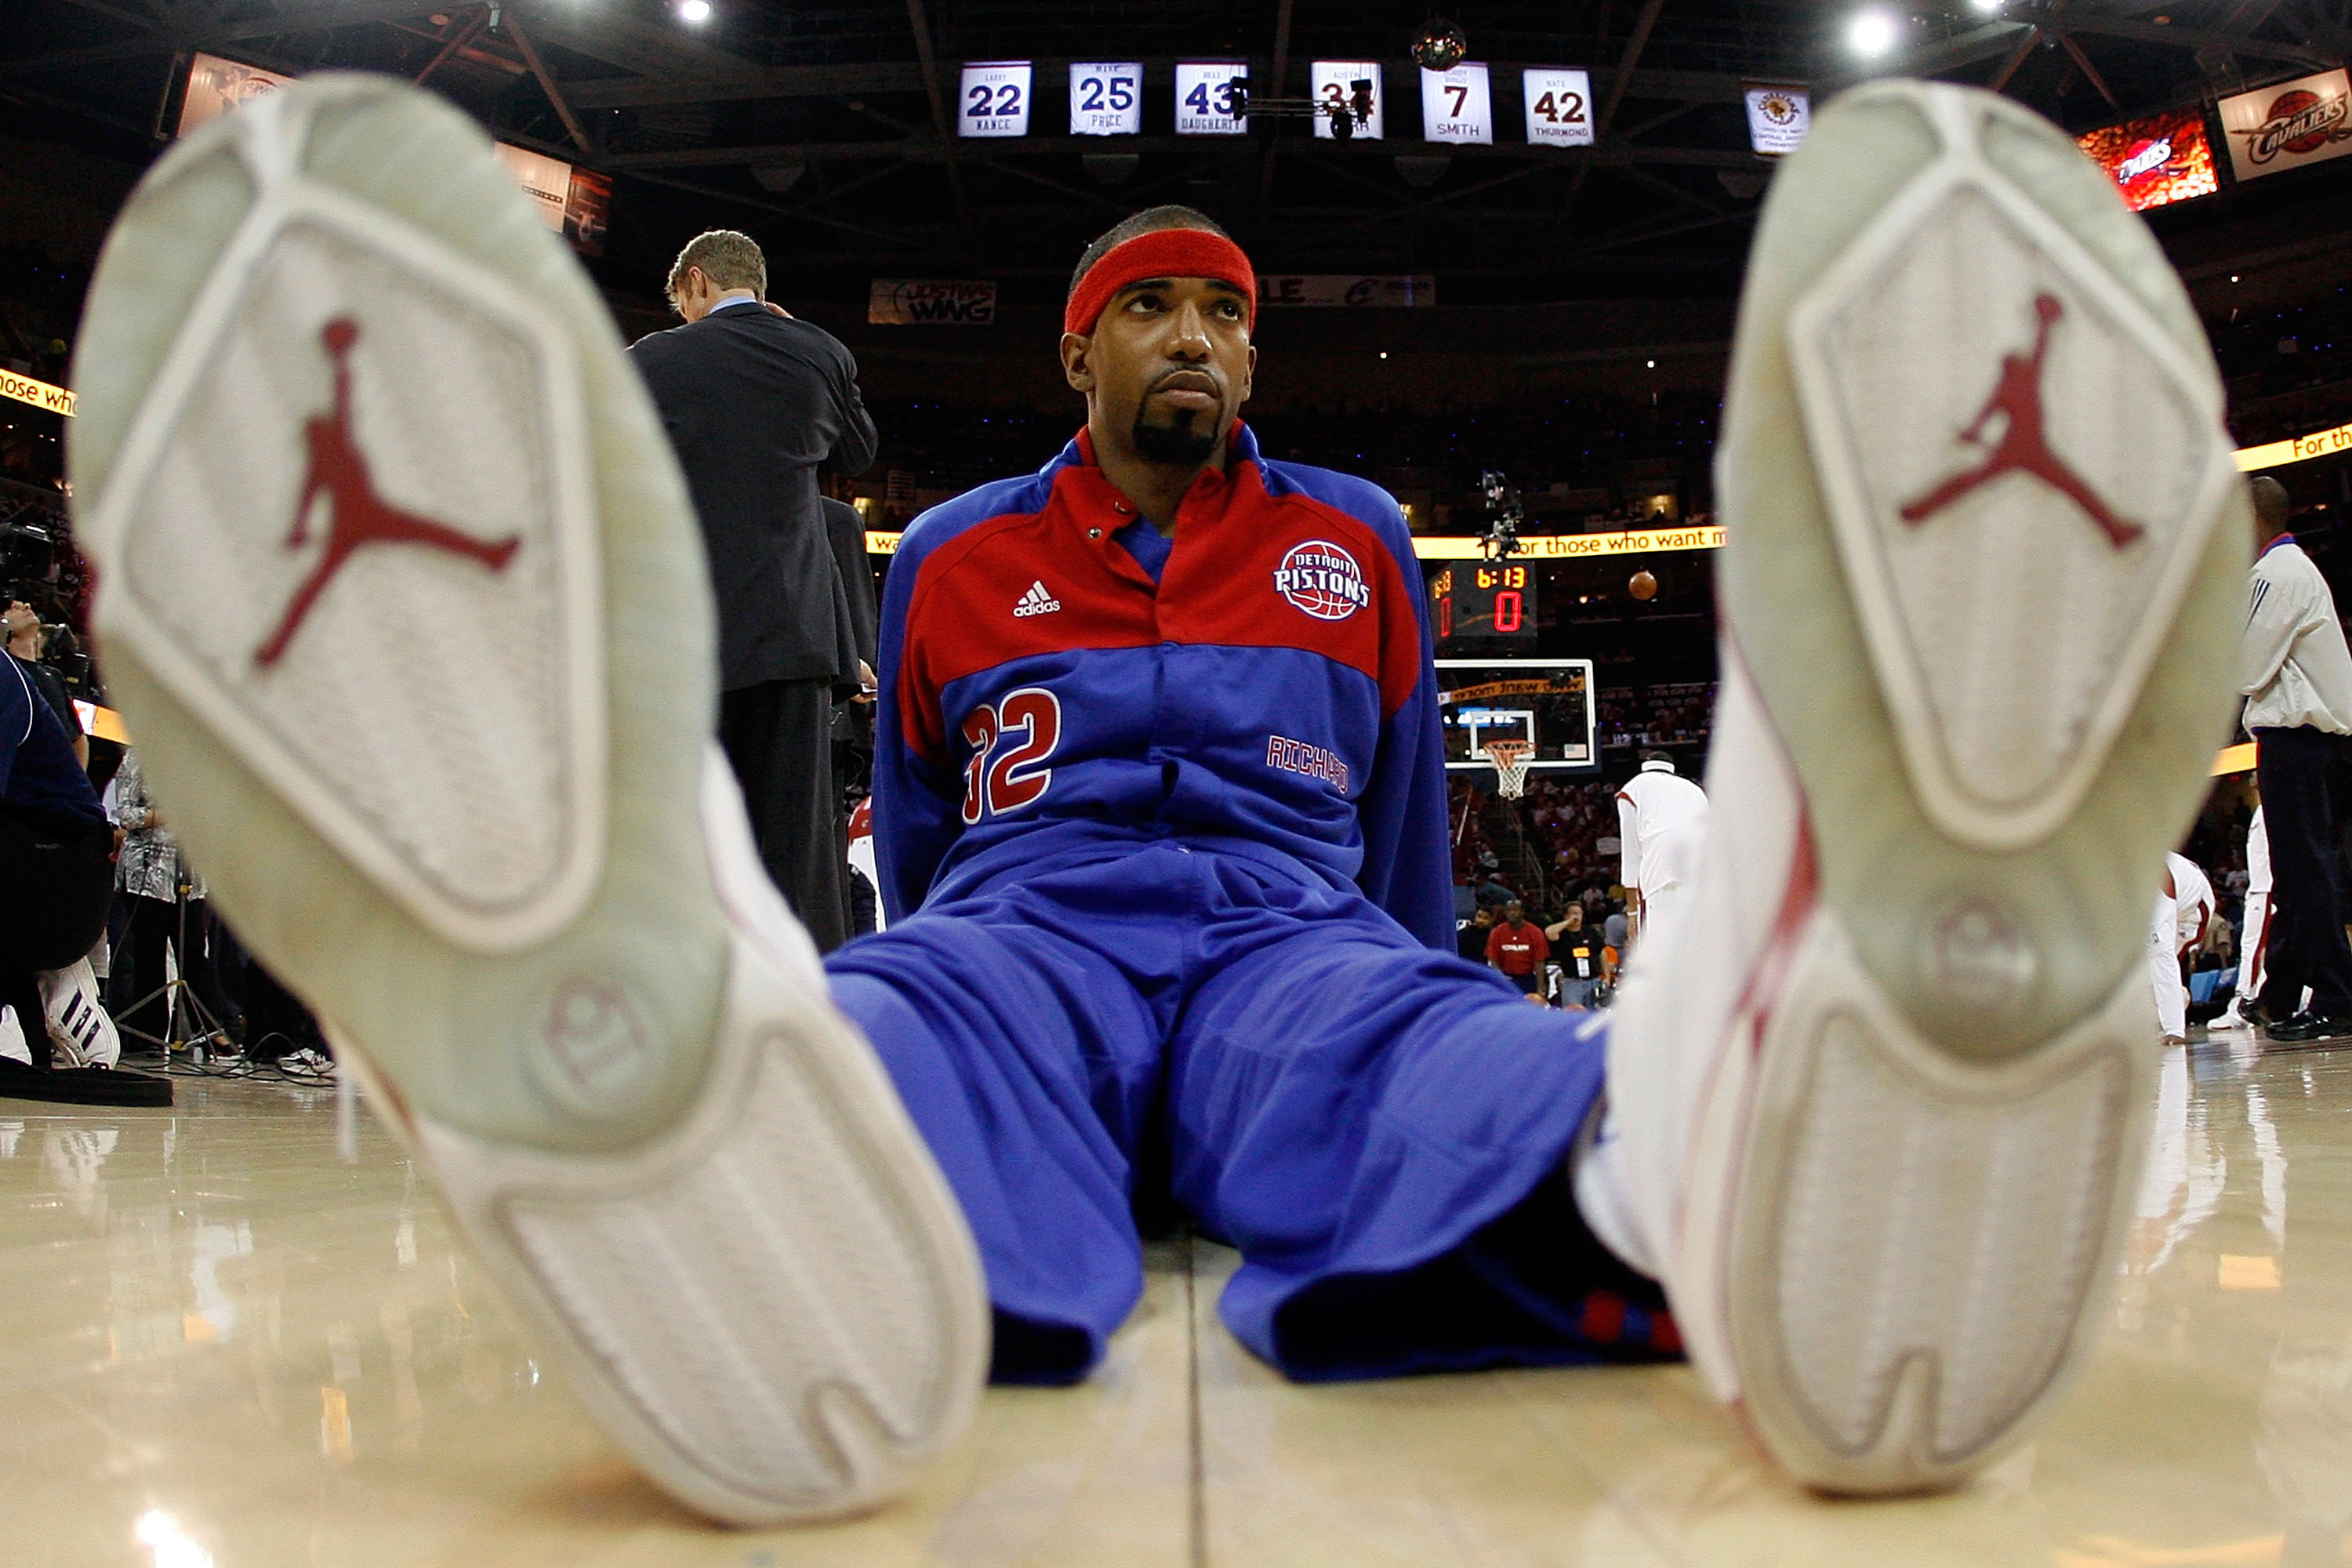 CLEVELAND - MAY 27: Richard Hamilton #32 of the Detroit Pistons stretches before taking on the Cleveland Cavaliers drives to the hoop in Game Three of the Eastern Conference Finals during the 2007 NBA Playoffs on May 27, 2007 at the Quicken Loans Arena in Cleveland, Ohio. NOTE TO USER: User expressly acknowledges and agrees that, by downloading and or using this photograph, User is consenting to the terms and conditions of the Getty Images License Agreement. (Photo by Gregory Shamus/Getty Images)